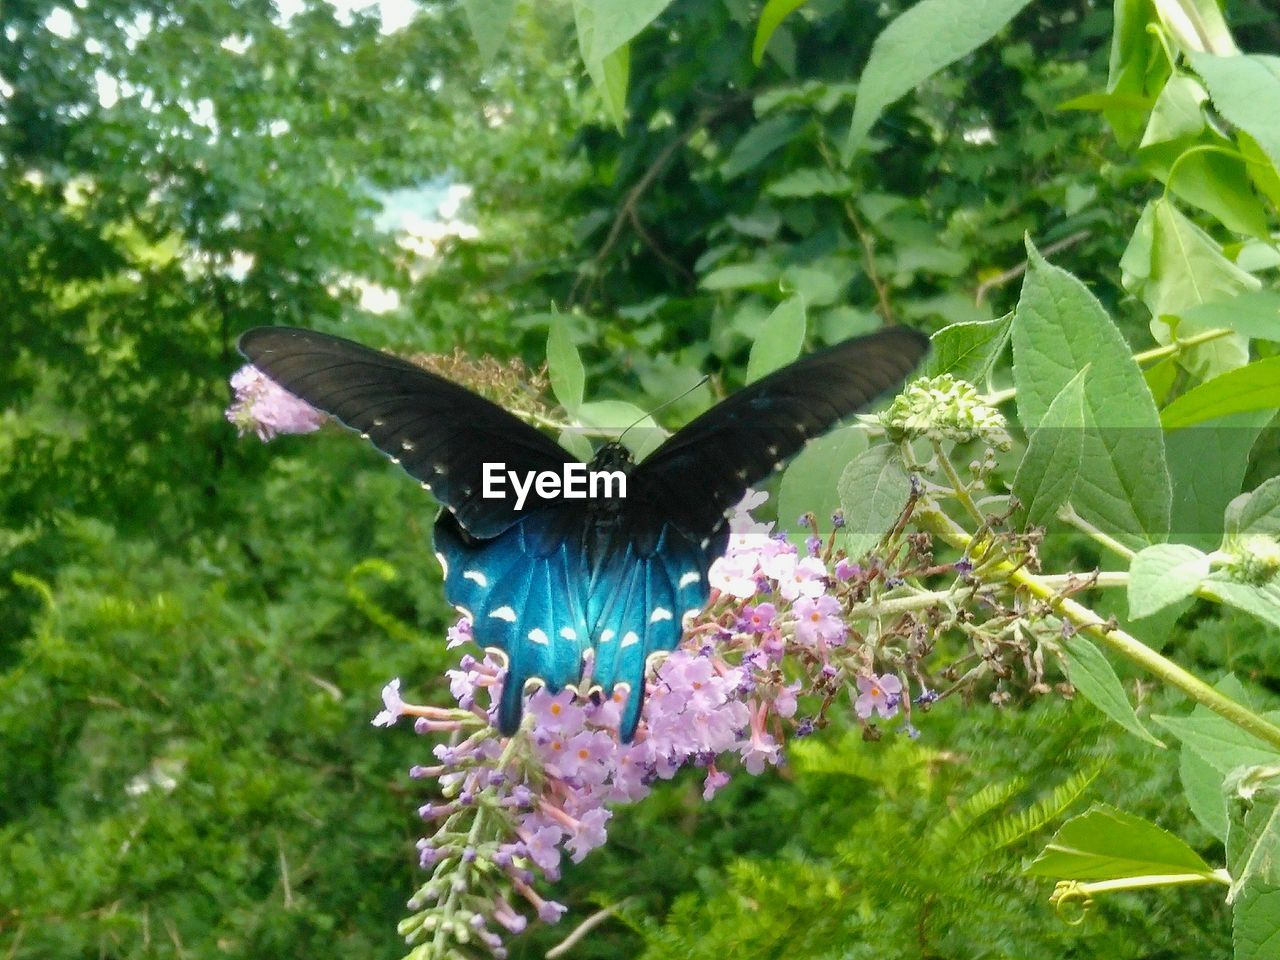 animal, animal themes, one animal, animal wildlife, animal wing, spread wings, plant, animals in the wild, flying, plant part, leaf, nature, day, growth, butterfly - insect, bird, animal body part, no people, beauty in nature, green color, outdoors, butterfly, flapping, purple